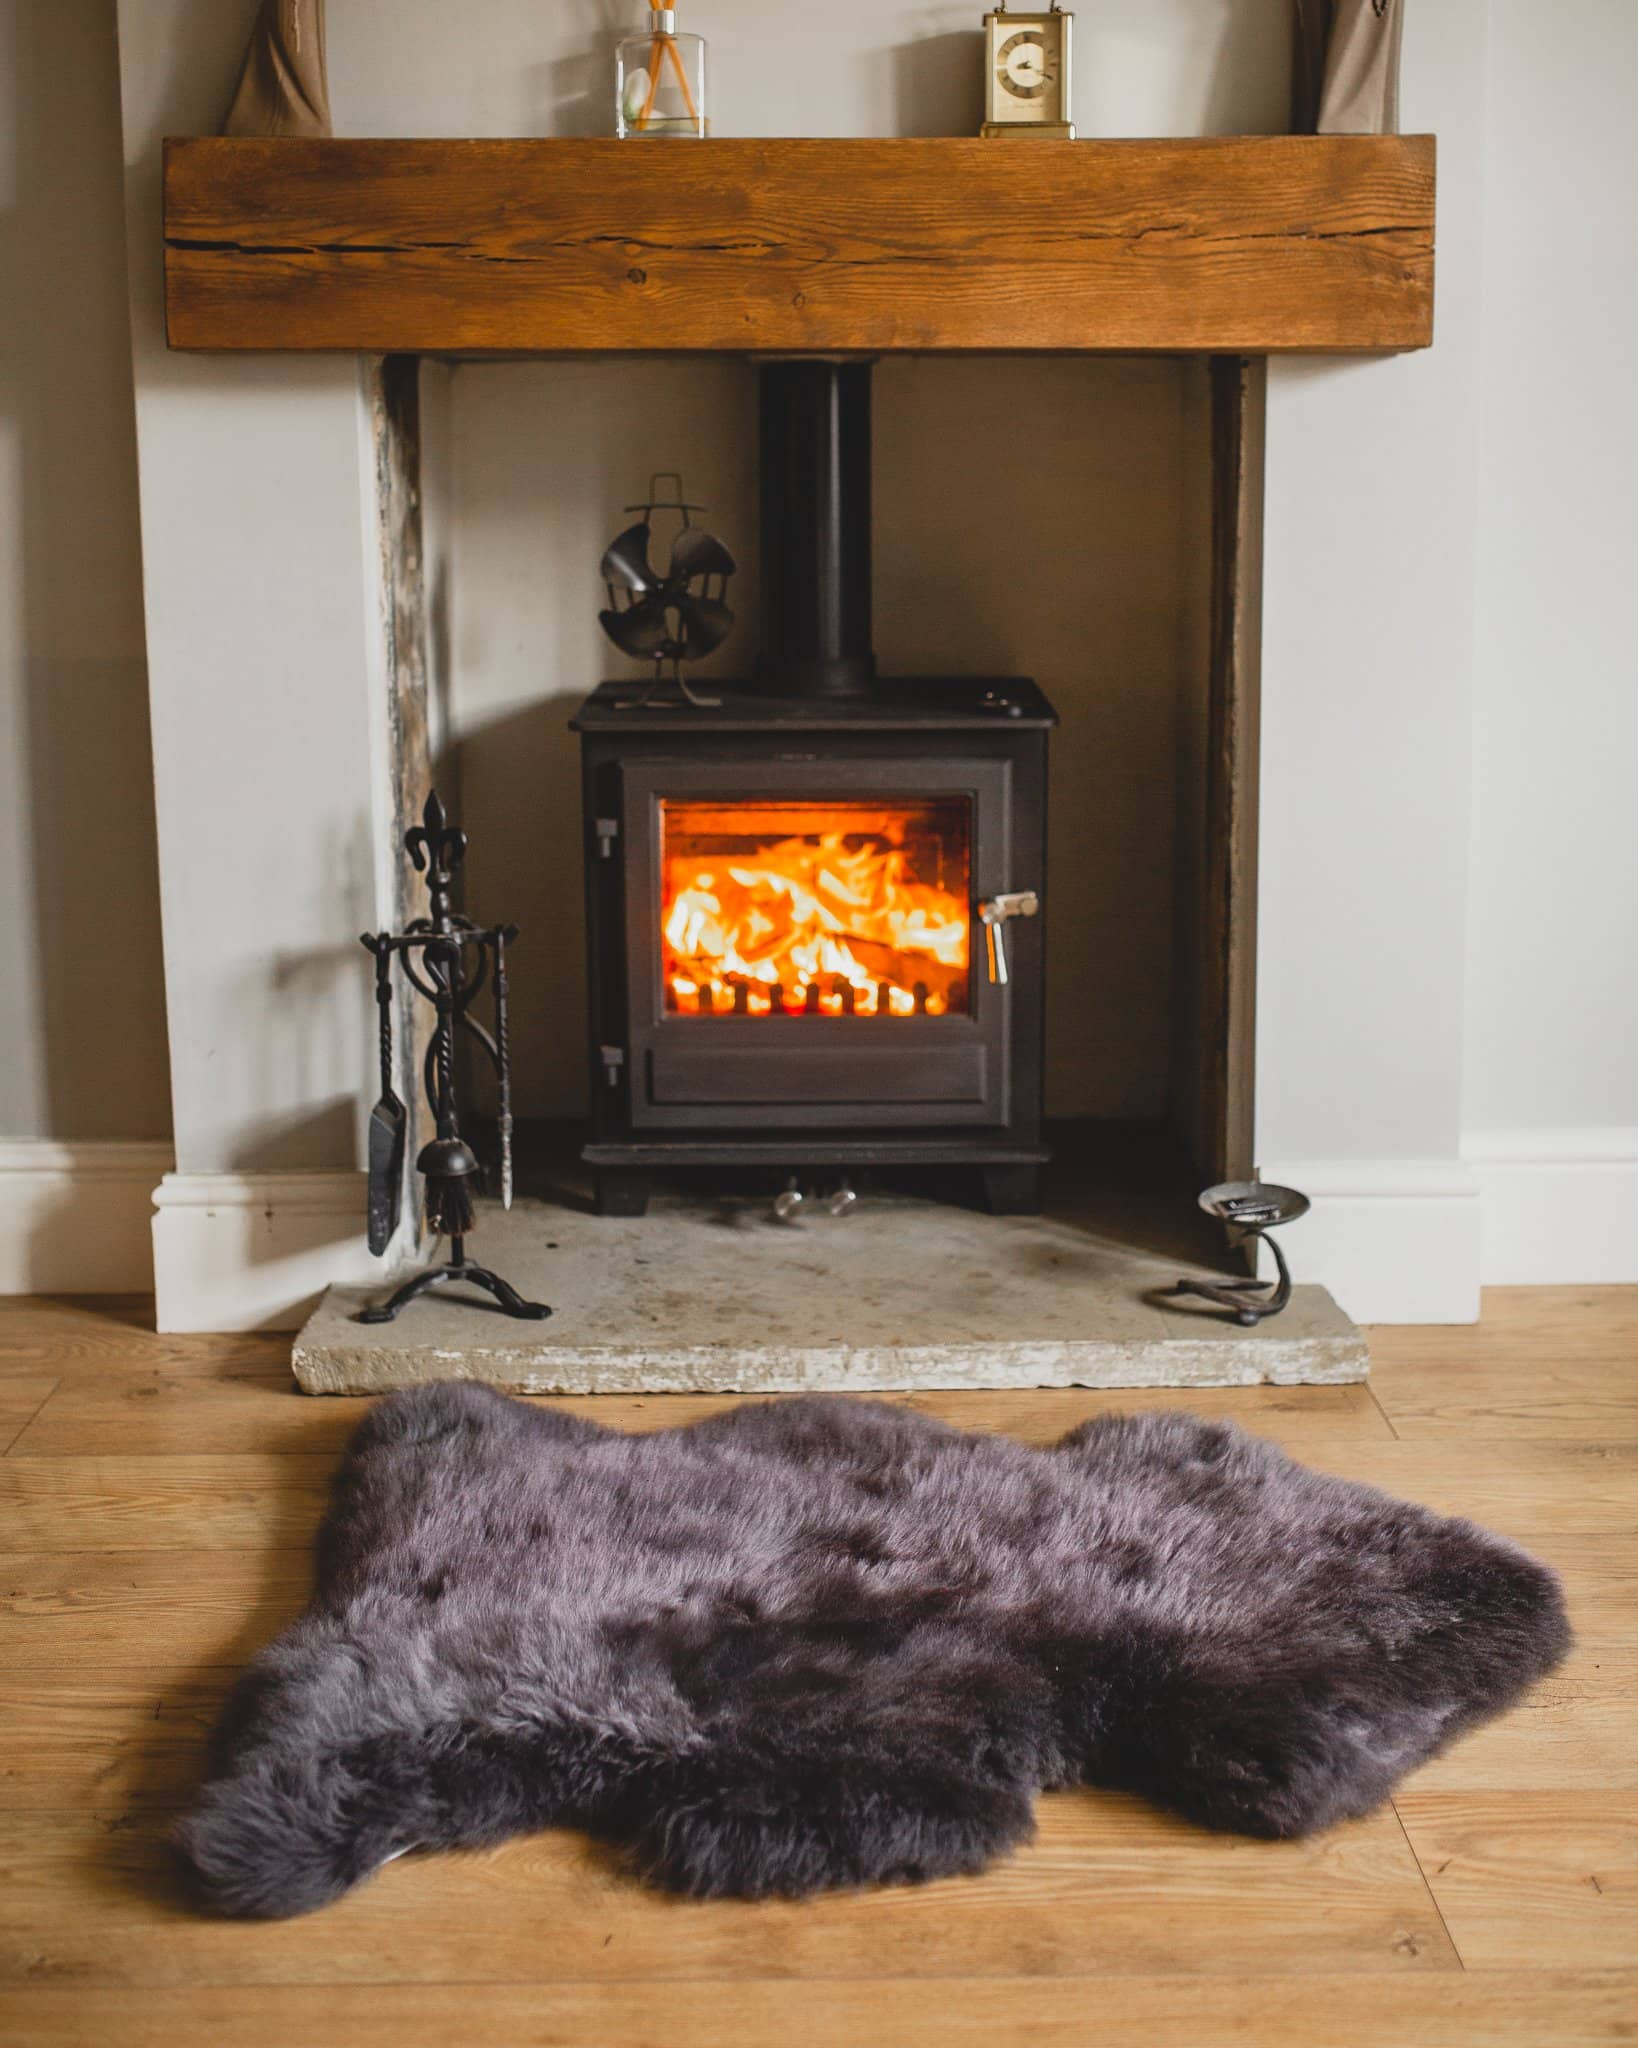 Nordvek sheepskin rug coloured grey in front of fire